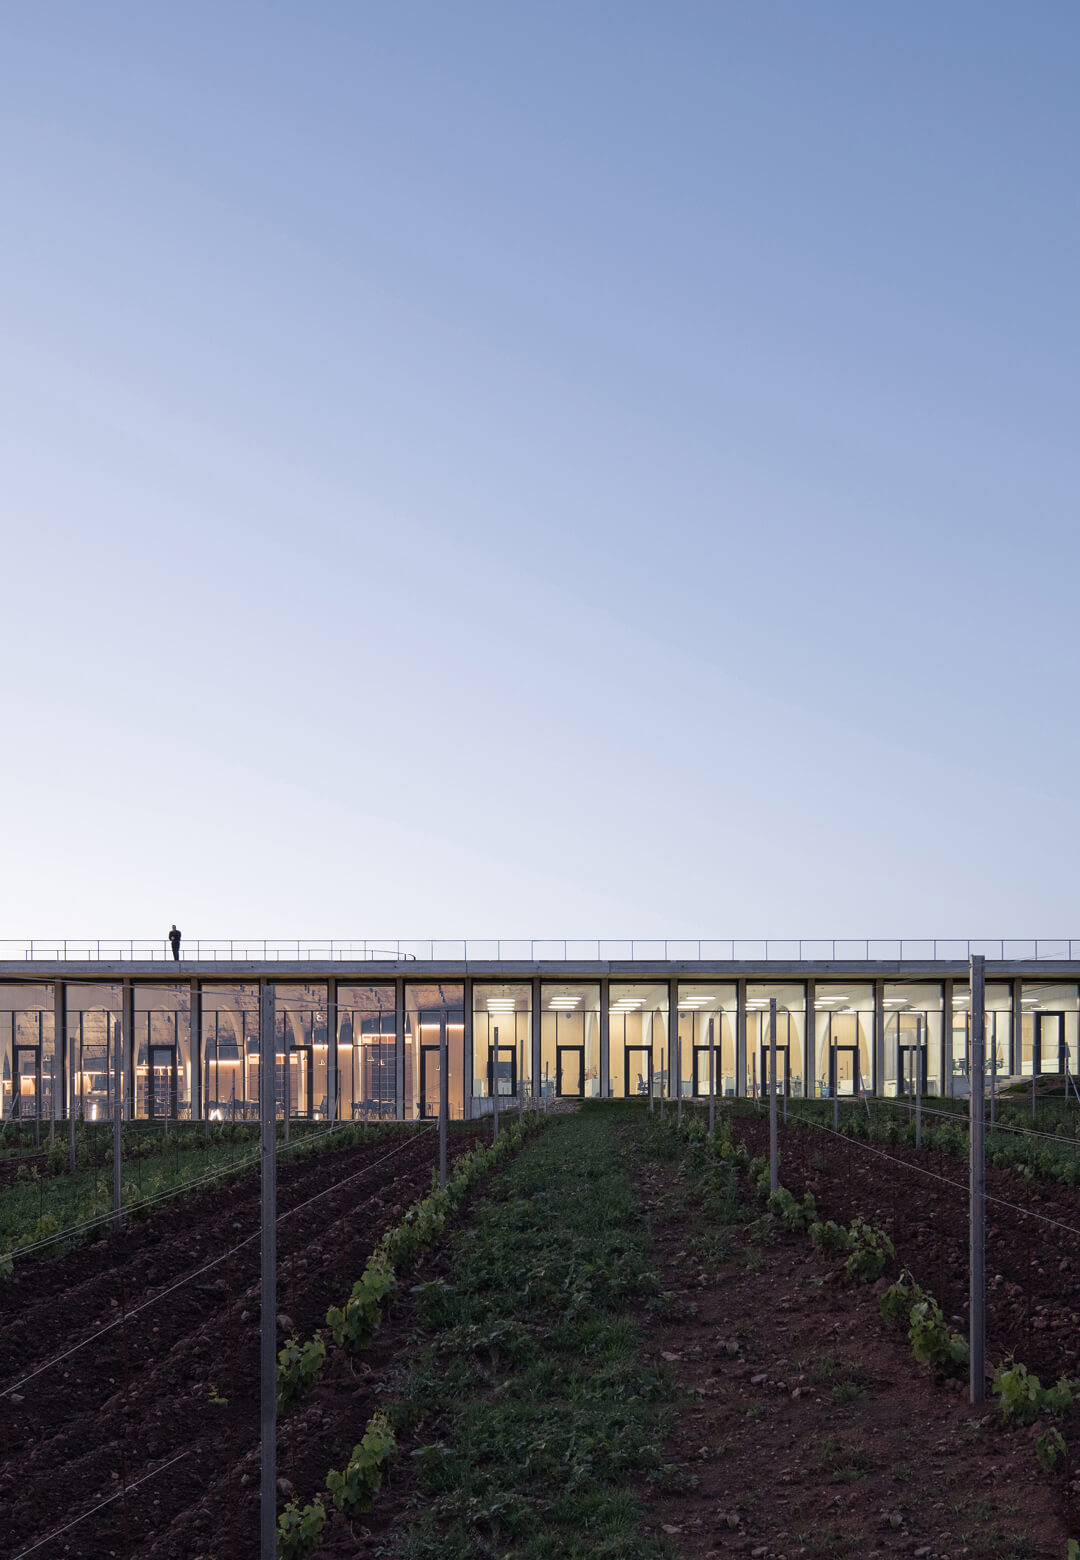 The varying heights of the production spaces mimic the vine-ladden terrain | Lahofer Winery by CHYBIK + KRISTOF | STIRworld